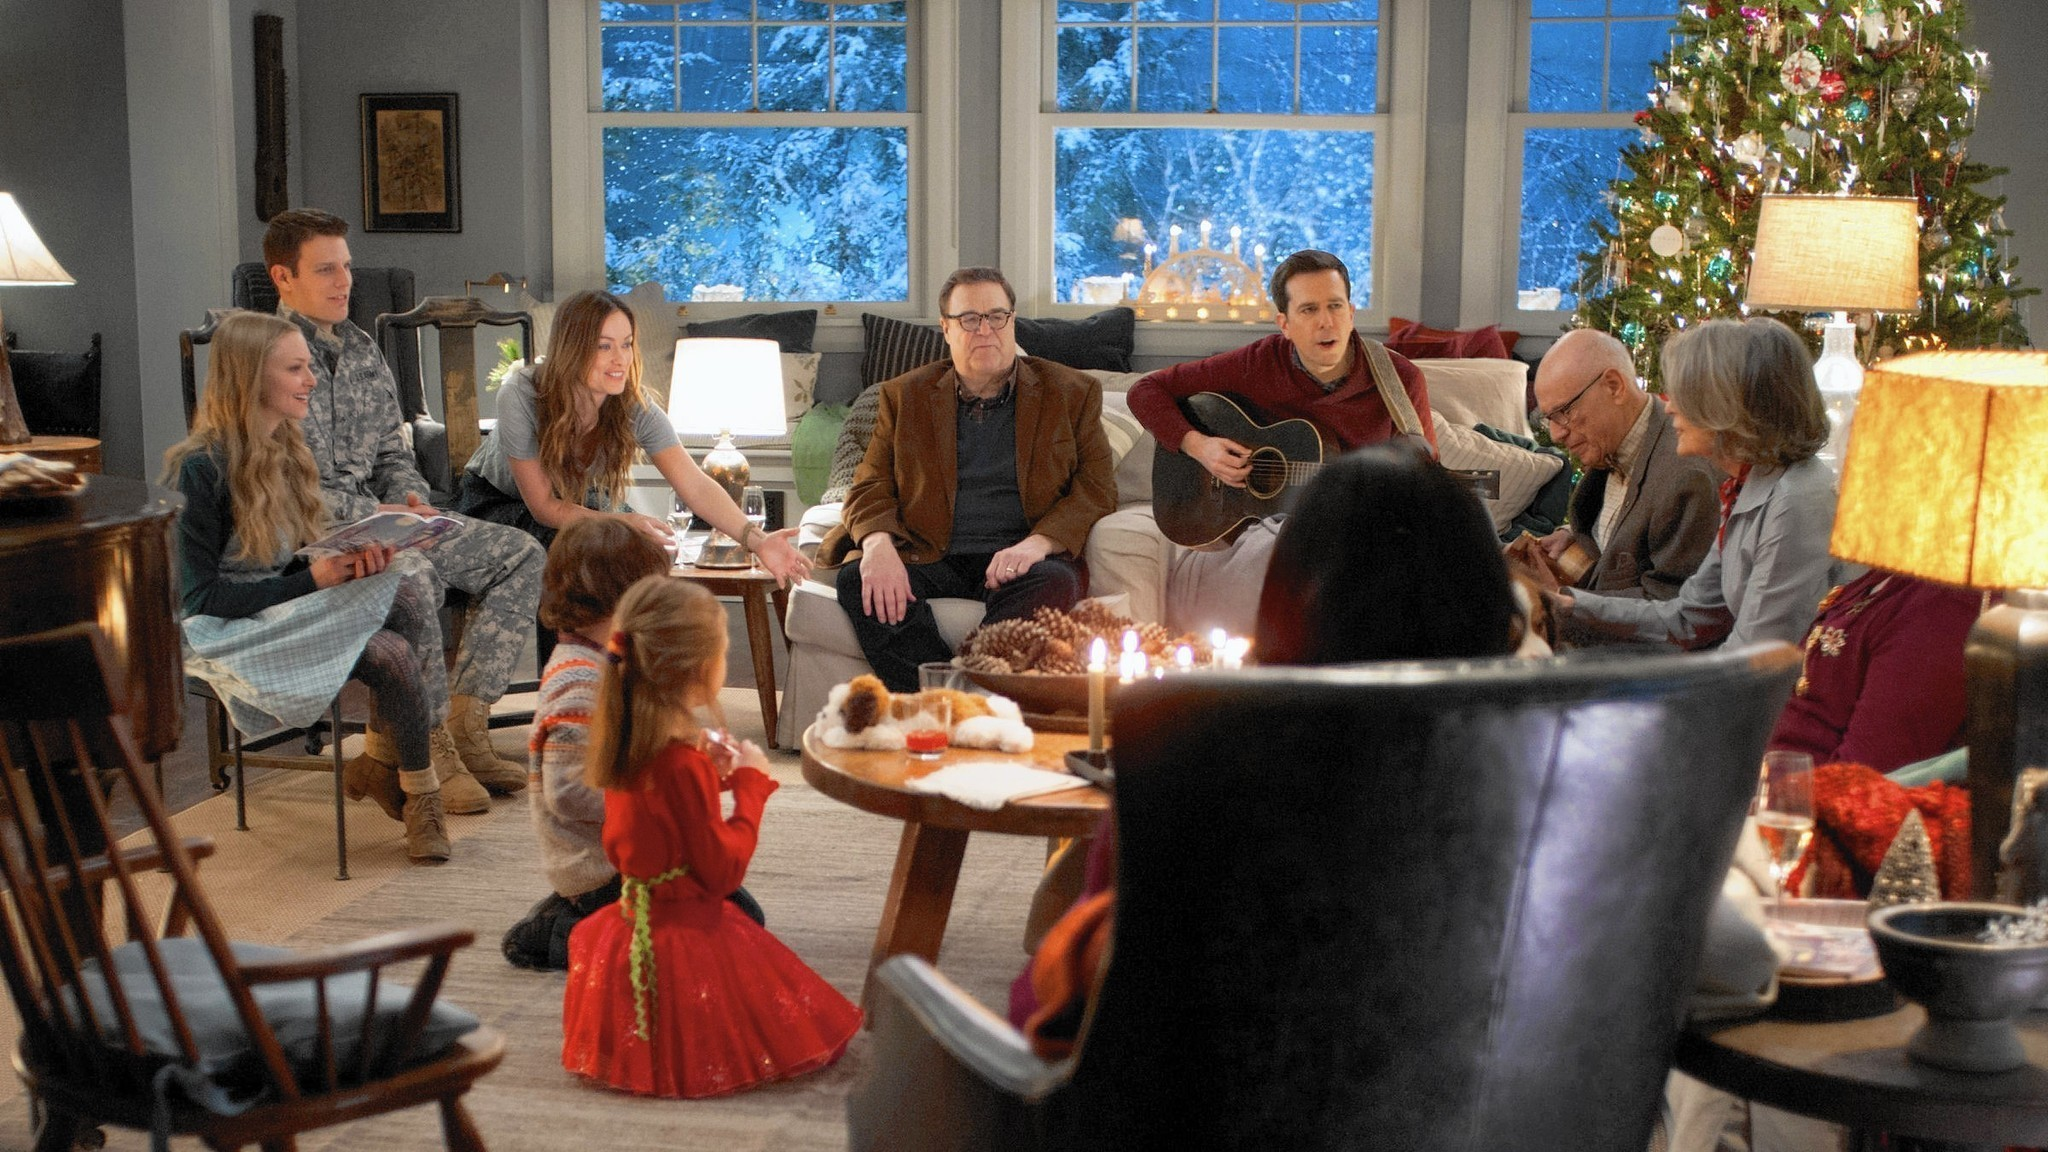 Amanda Seyfried co-stars in \'Love the Coopers\' Christmas comedy ...